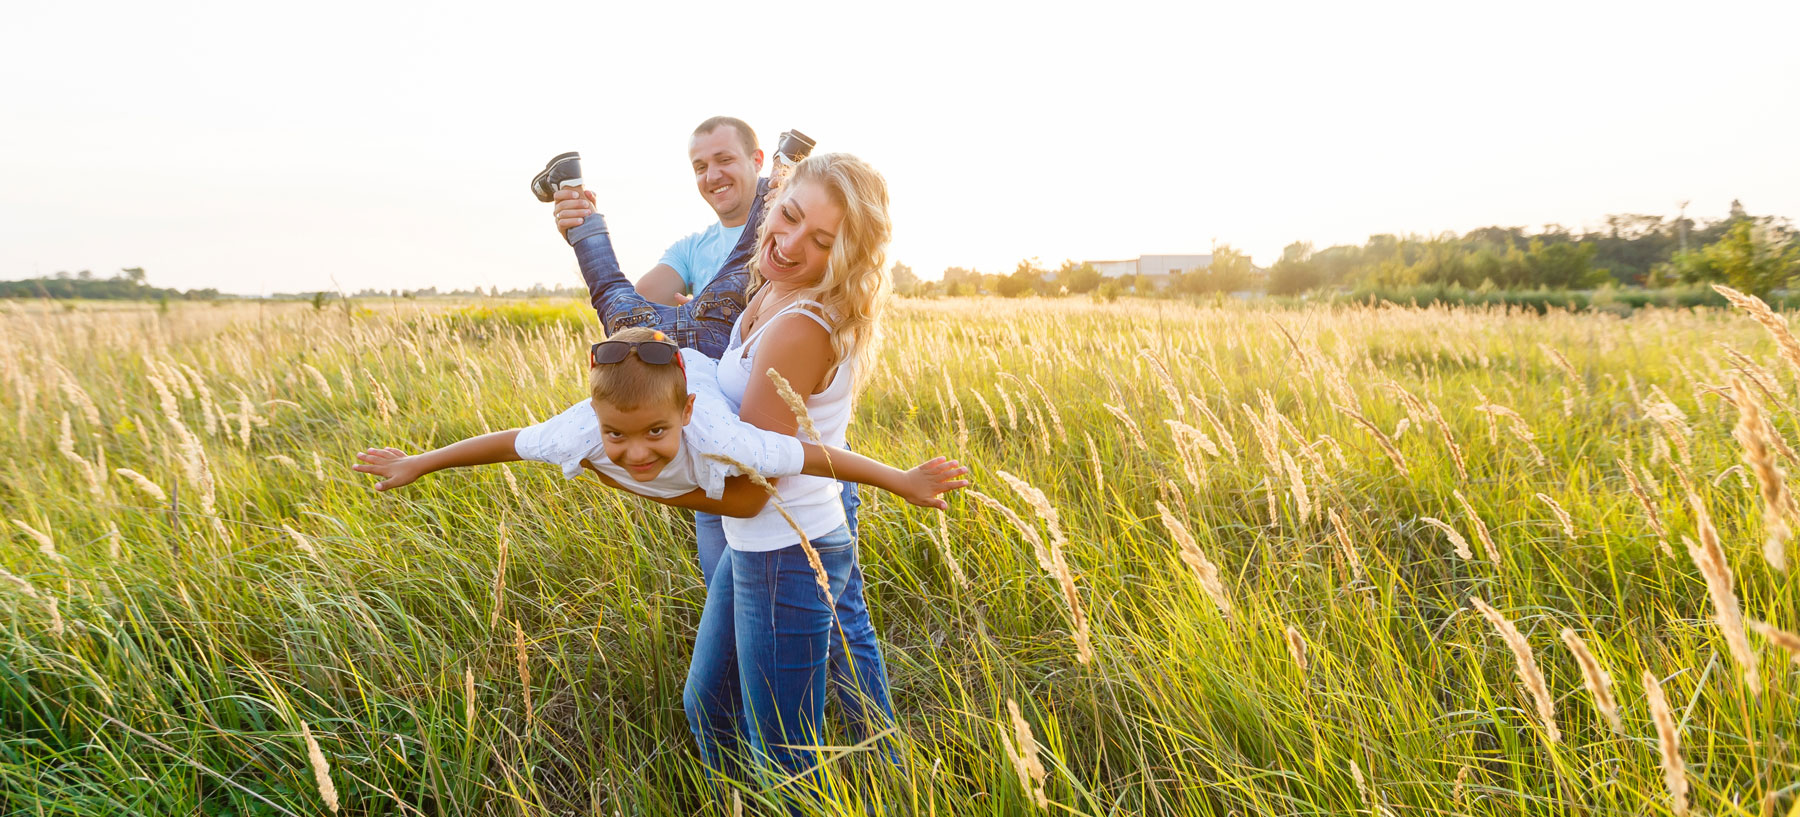 family in countryside field